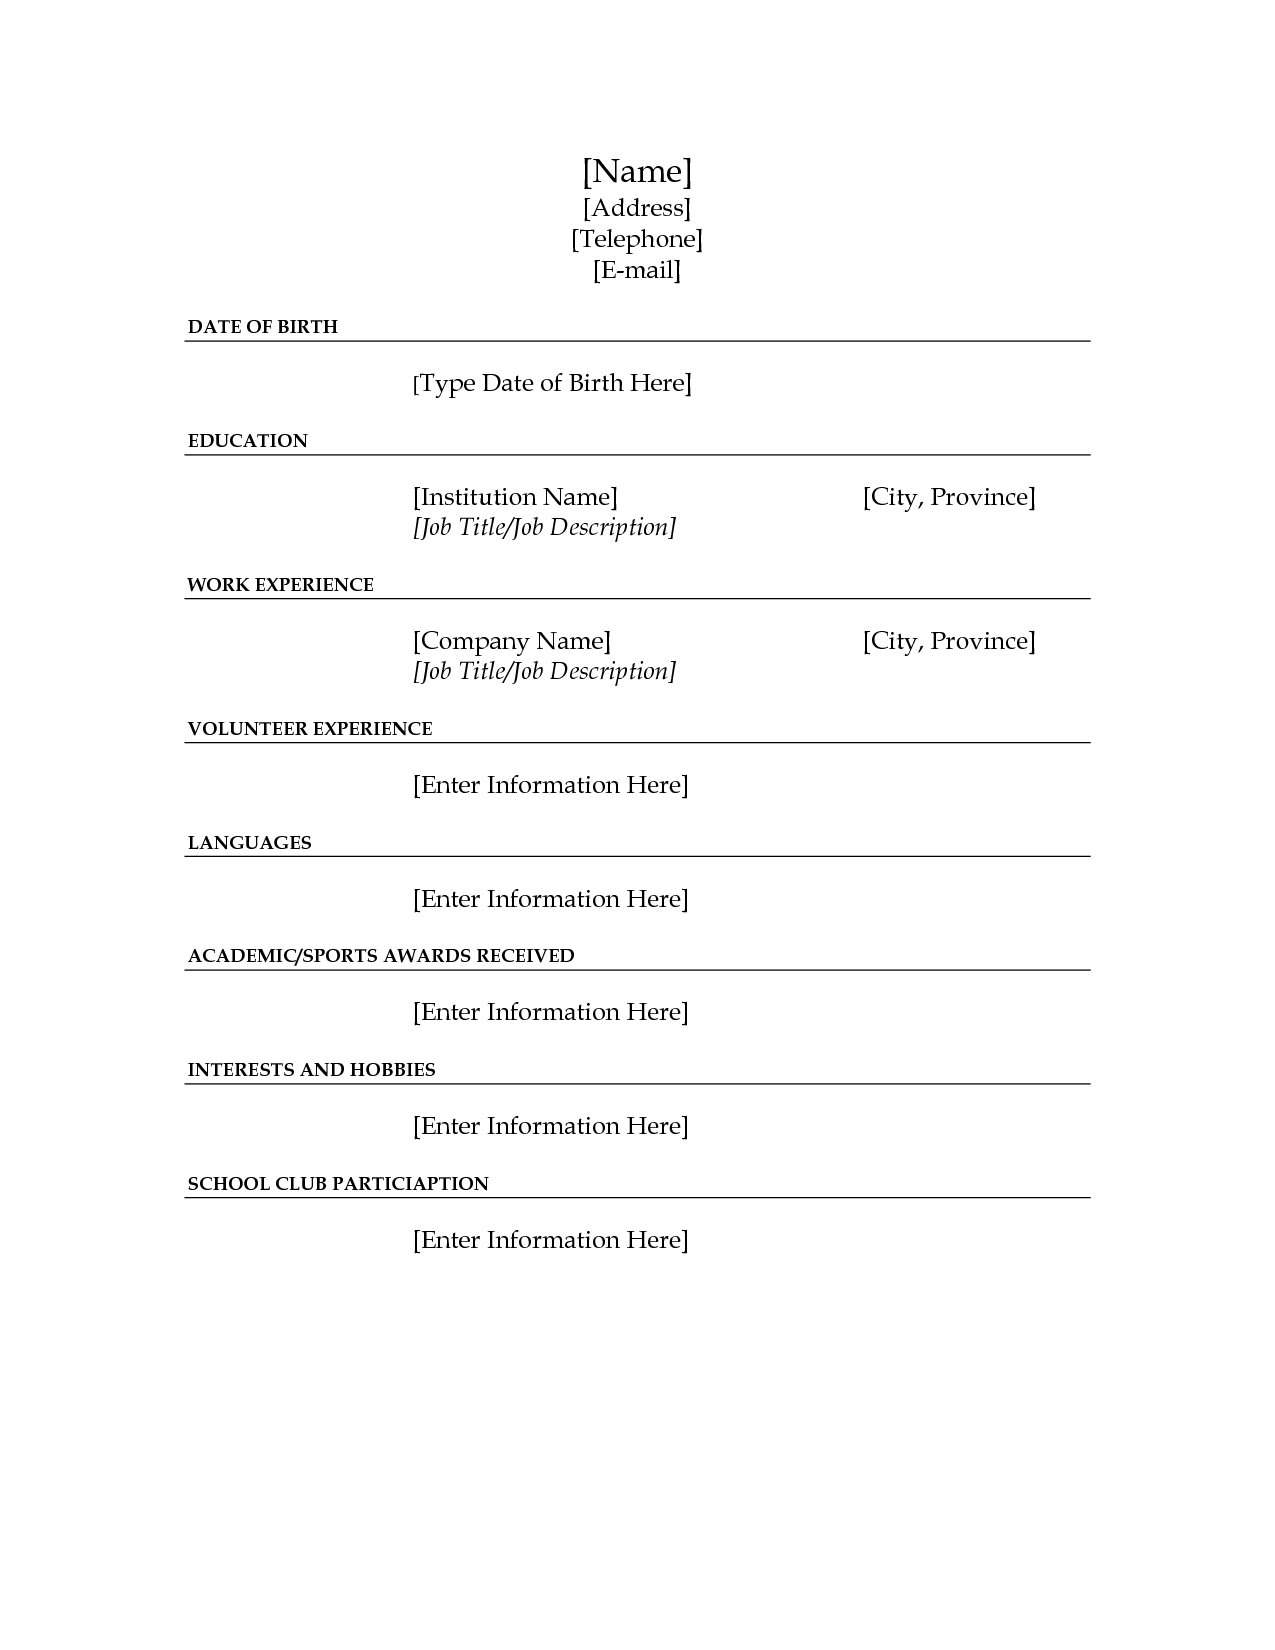 Free Fill In The Blank Resume  HttpWwwResumecareerInfoFree